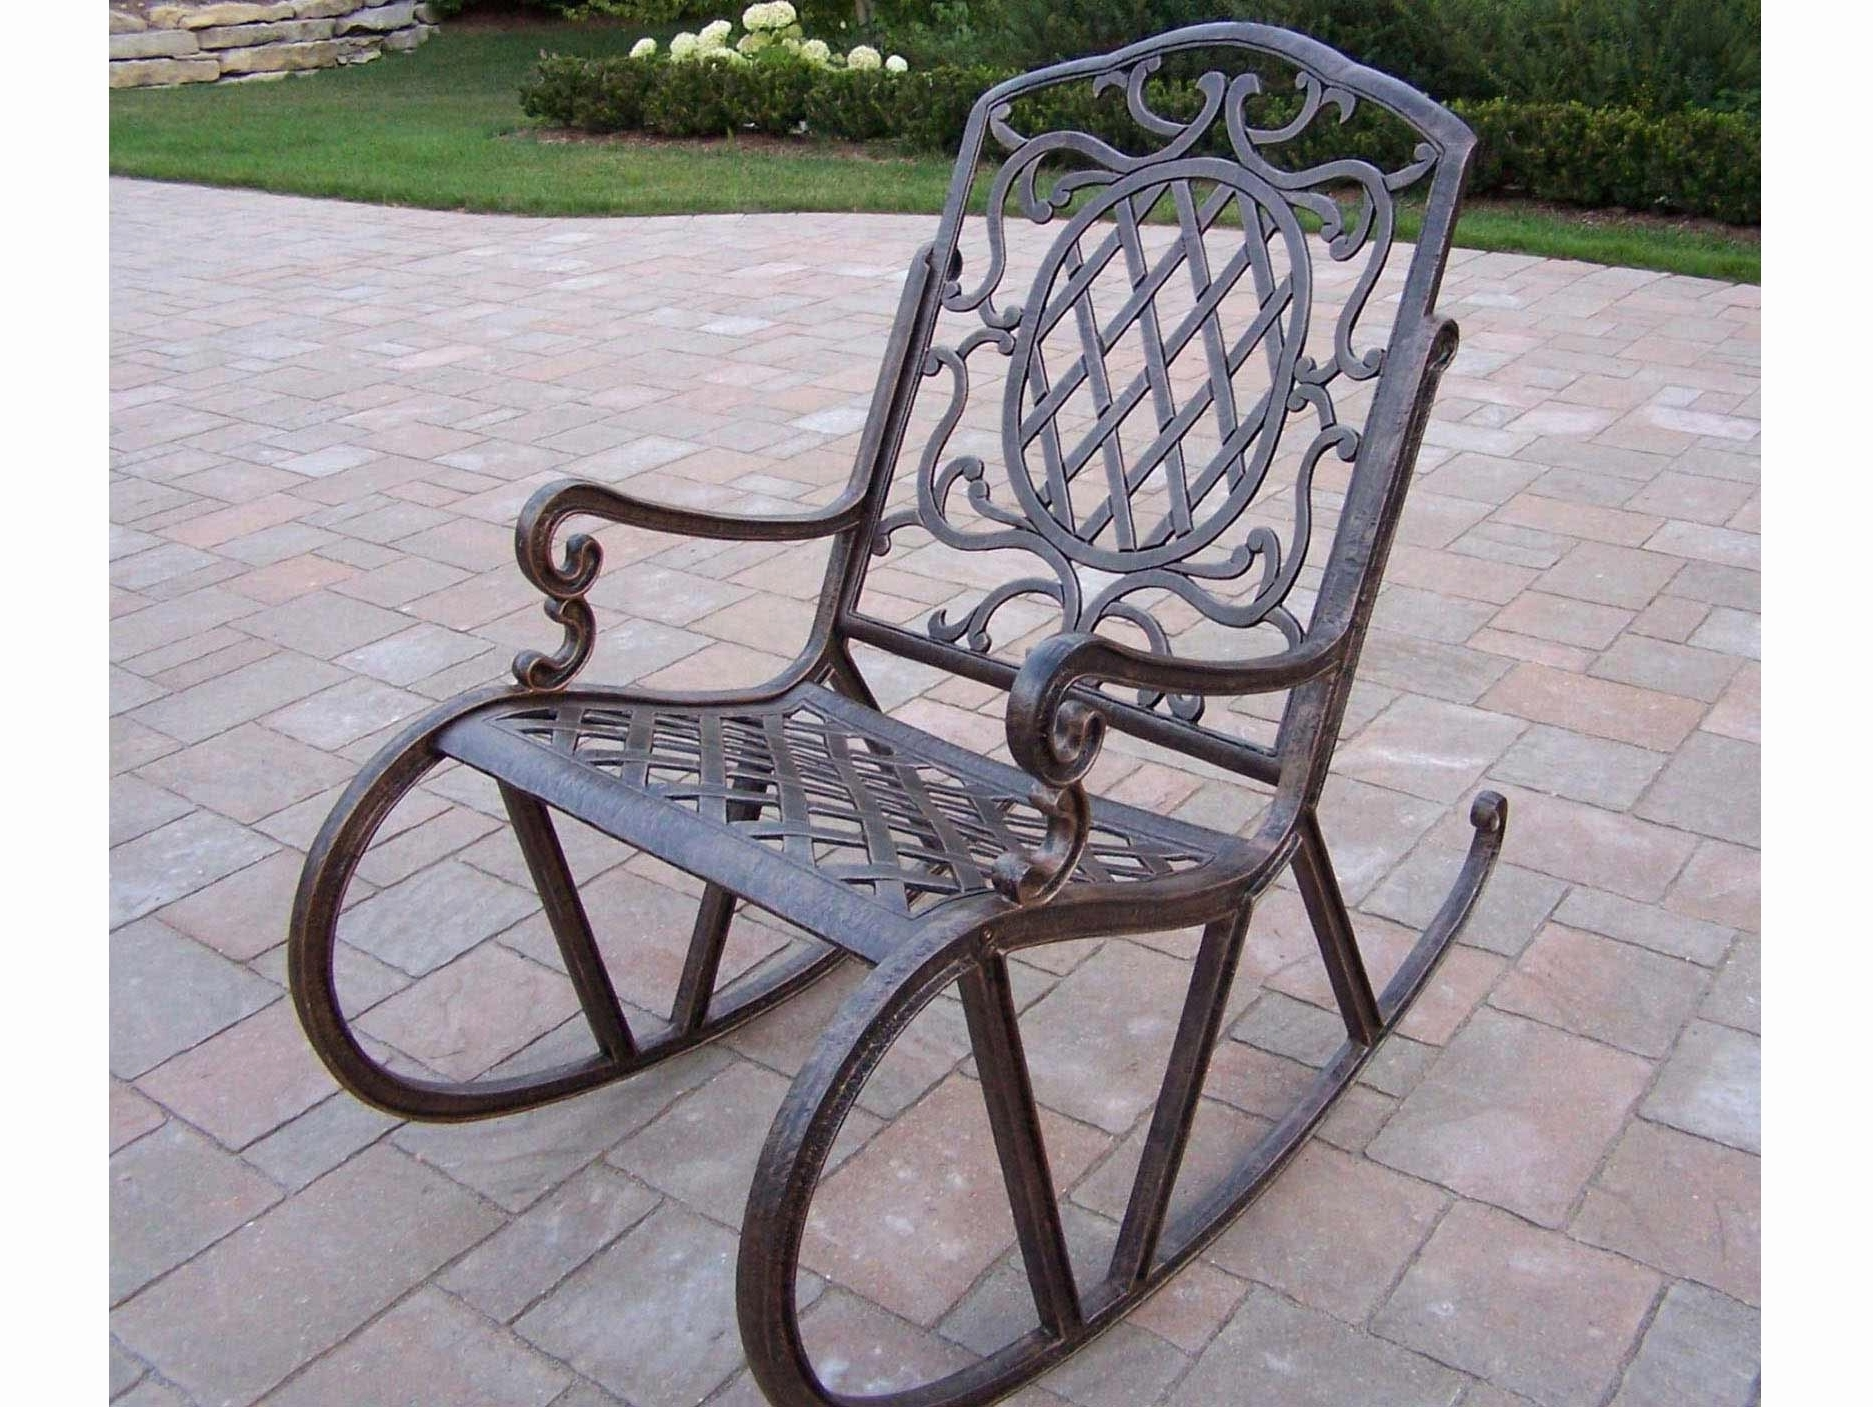 Wrought Iron Patio Furniture Rocking Chairs Ideas Antique Vintage Inside Widely Used Iron Rocking Patio Chairs (View 15 of 15)